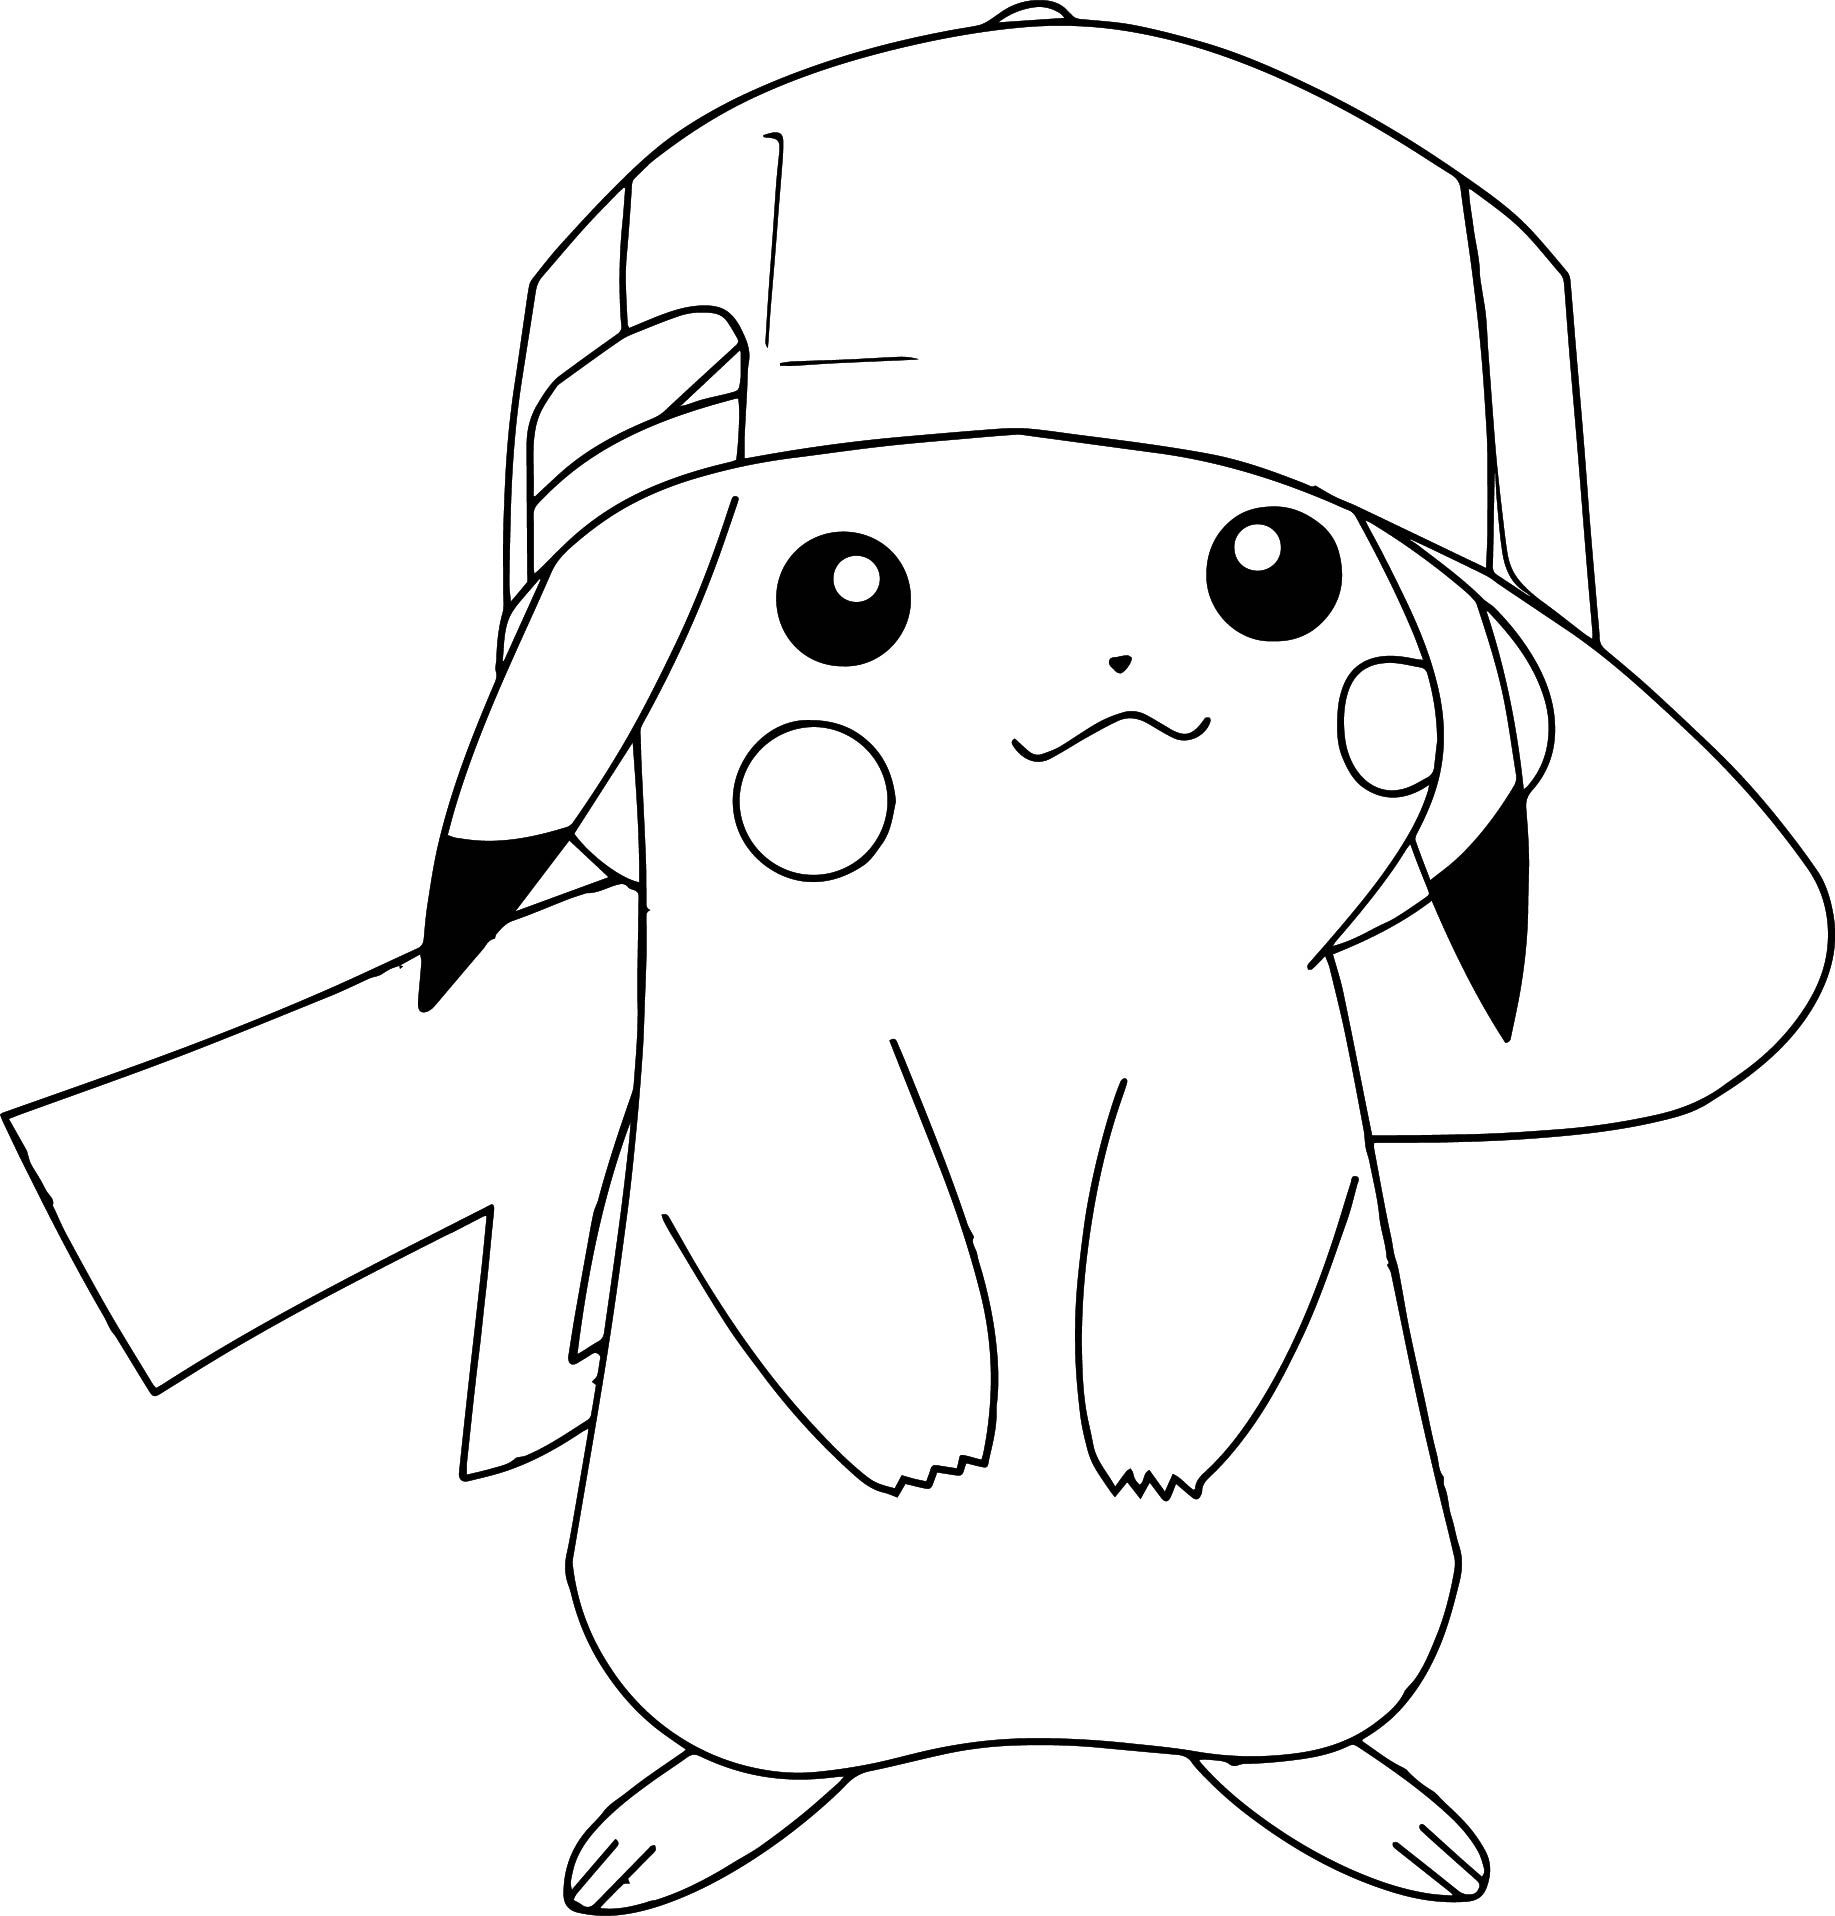 Pokemon Coloring Pages to Print 11t - Free For kids